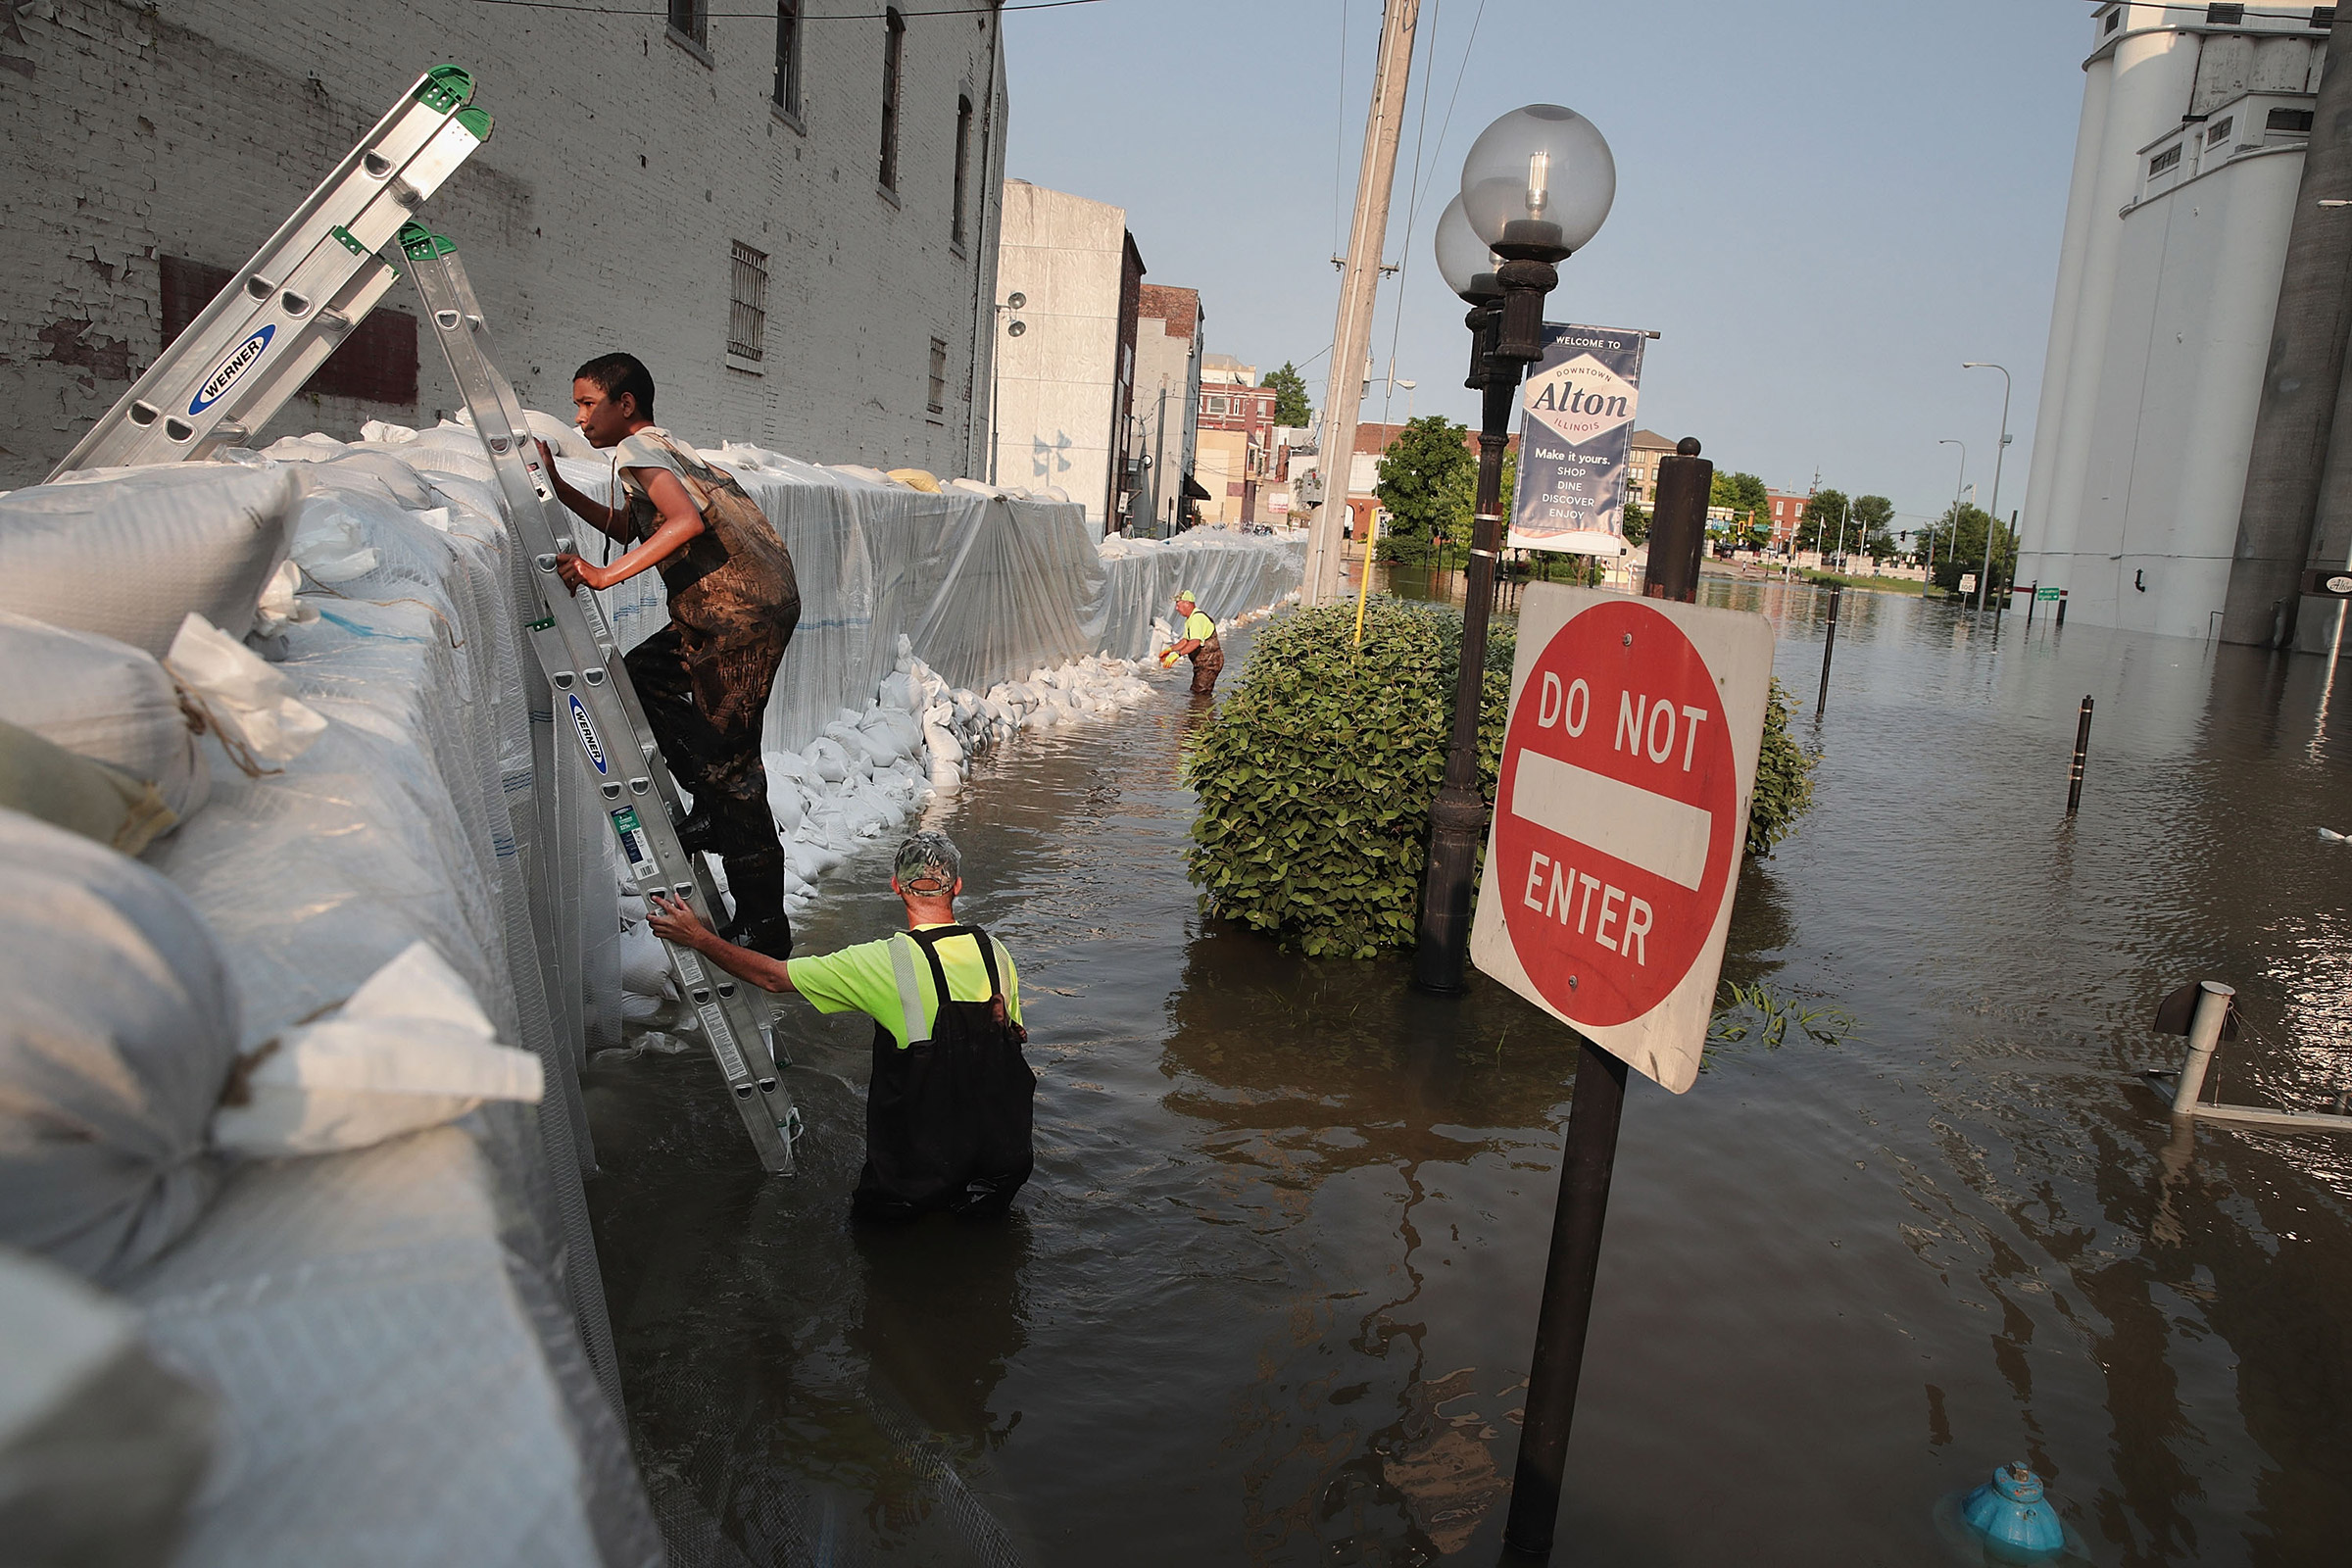 Workers construct a temporary floodwall along Highway 100 to keep floodwater from the Mississippi River out of the historic downtown area in Alton, Ill., on May 31, 2019.